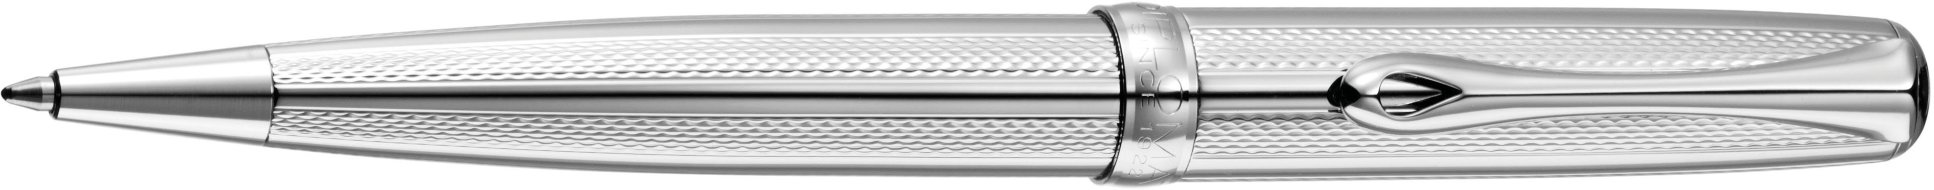 Шариковая ручка Diplomat Excellence A Guilloche Stripes Chrome easyFlow